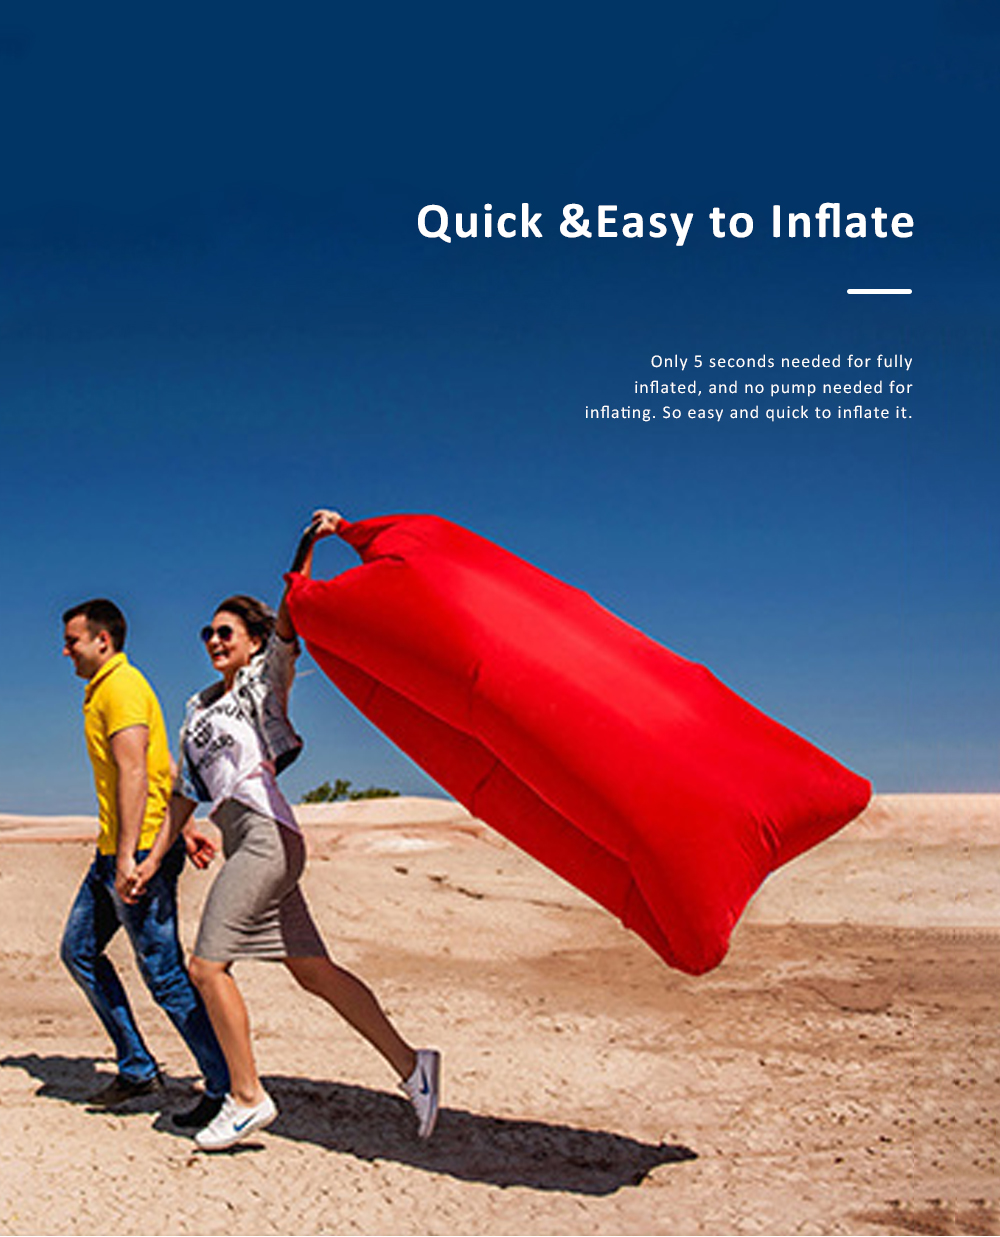 Inflatable Air Sofa Nylon Anti-Air Leaking Couch Convenient Sleeping Sofa Bag with Pocket for Outdoor Camping Travel Beach 4